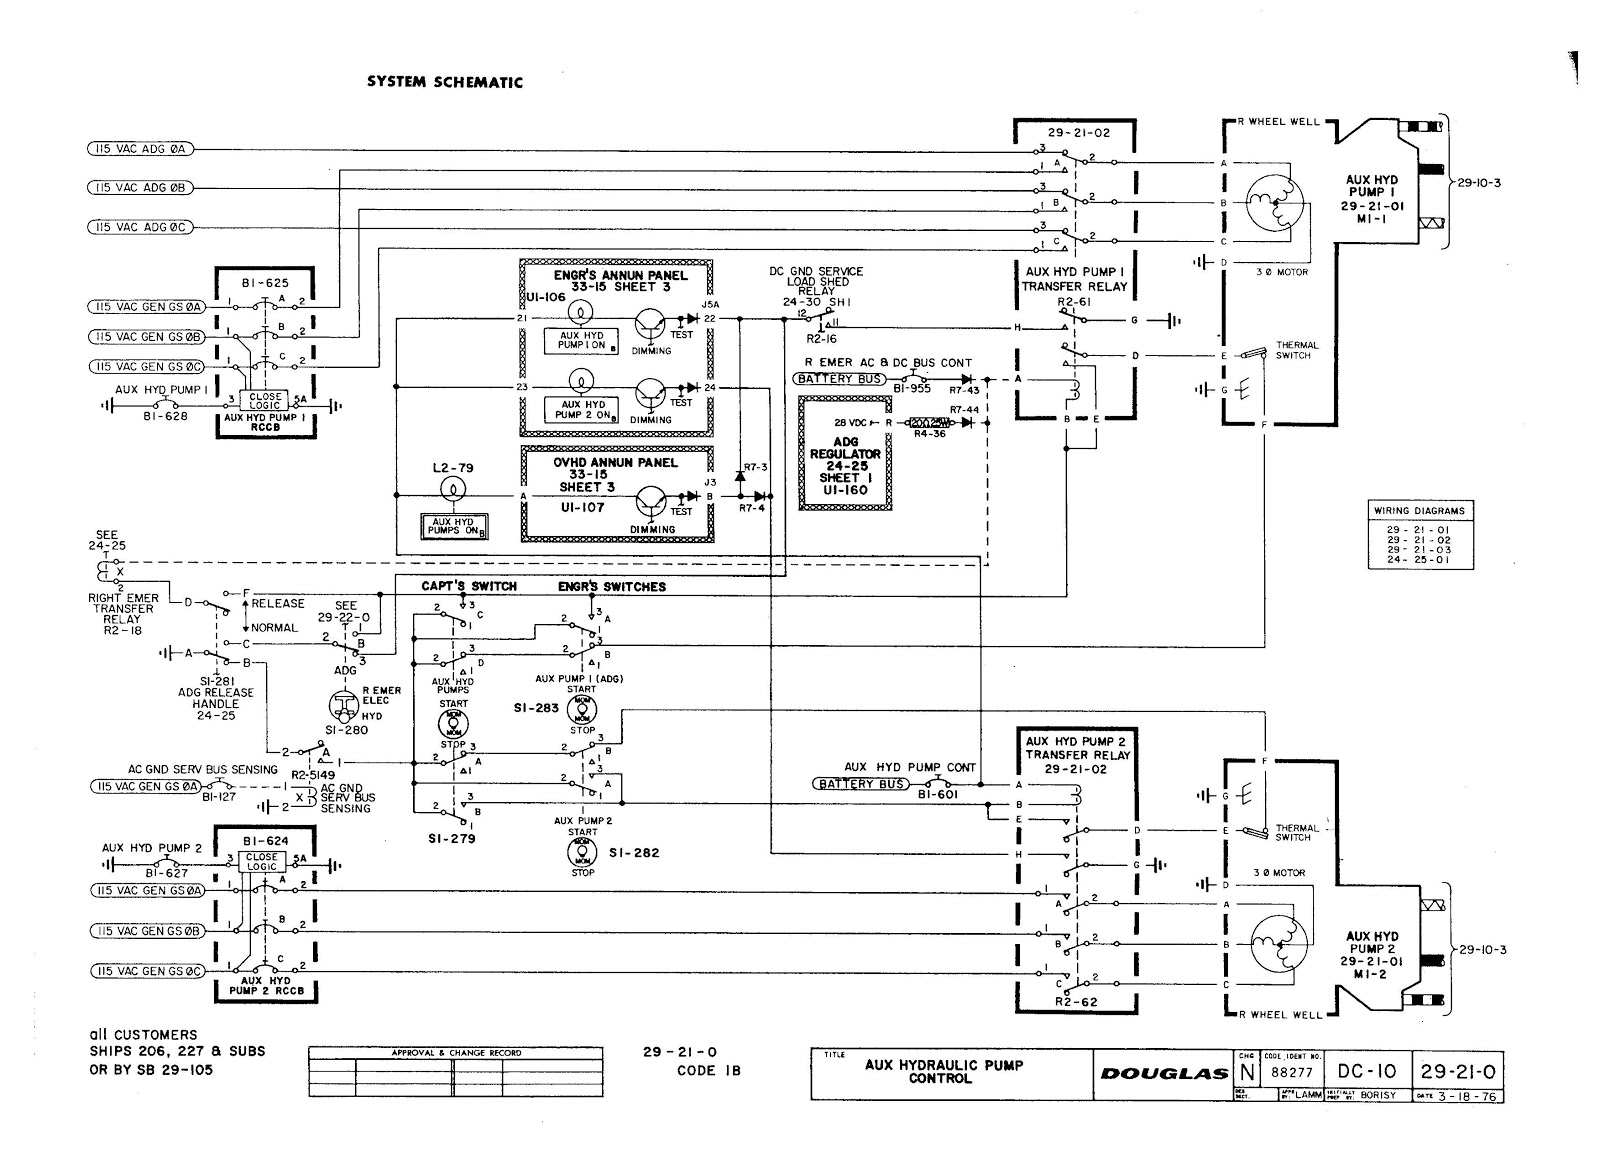 How To Read Wiring Diagram Symbols on subaru electrical diagrams, reading electrical diagrams, learn to read wiring diagrams,